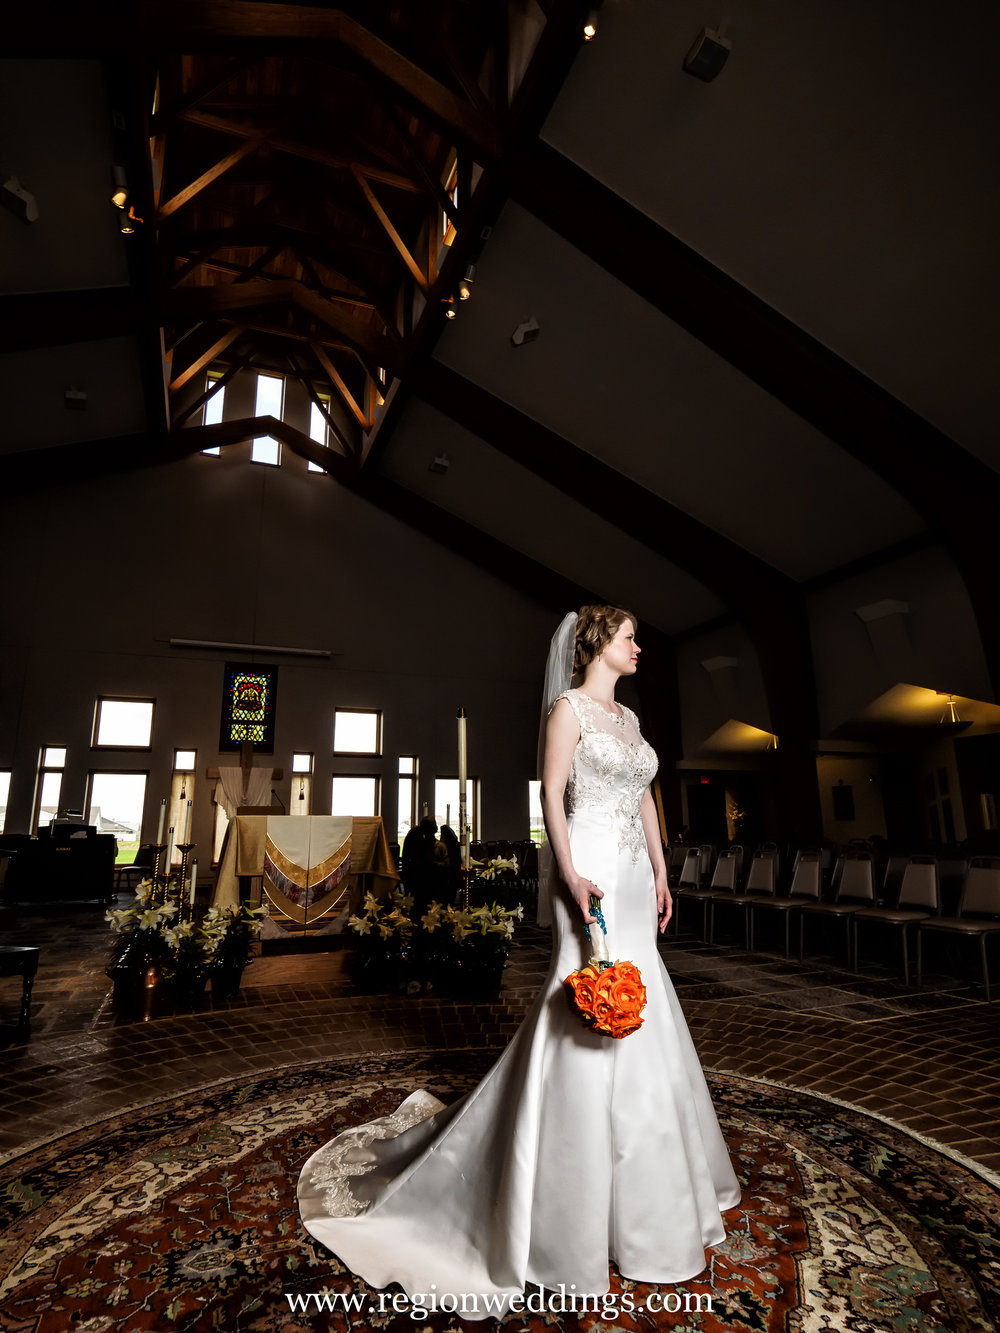 Bride at the center of Holy Spirit Catholic Church.